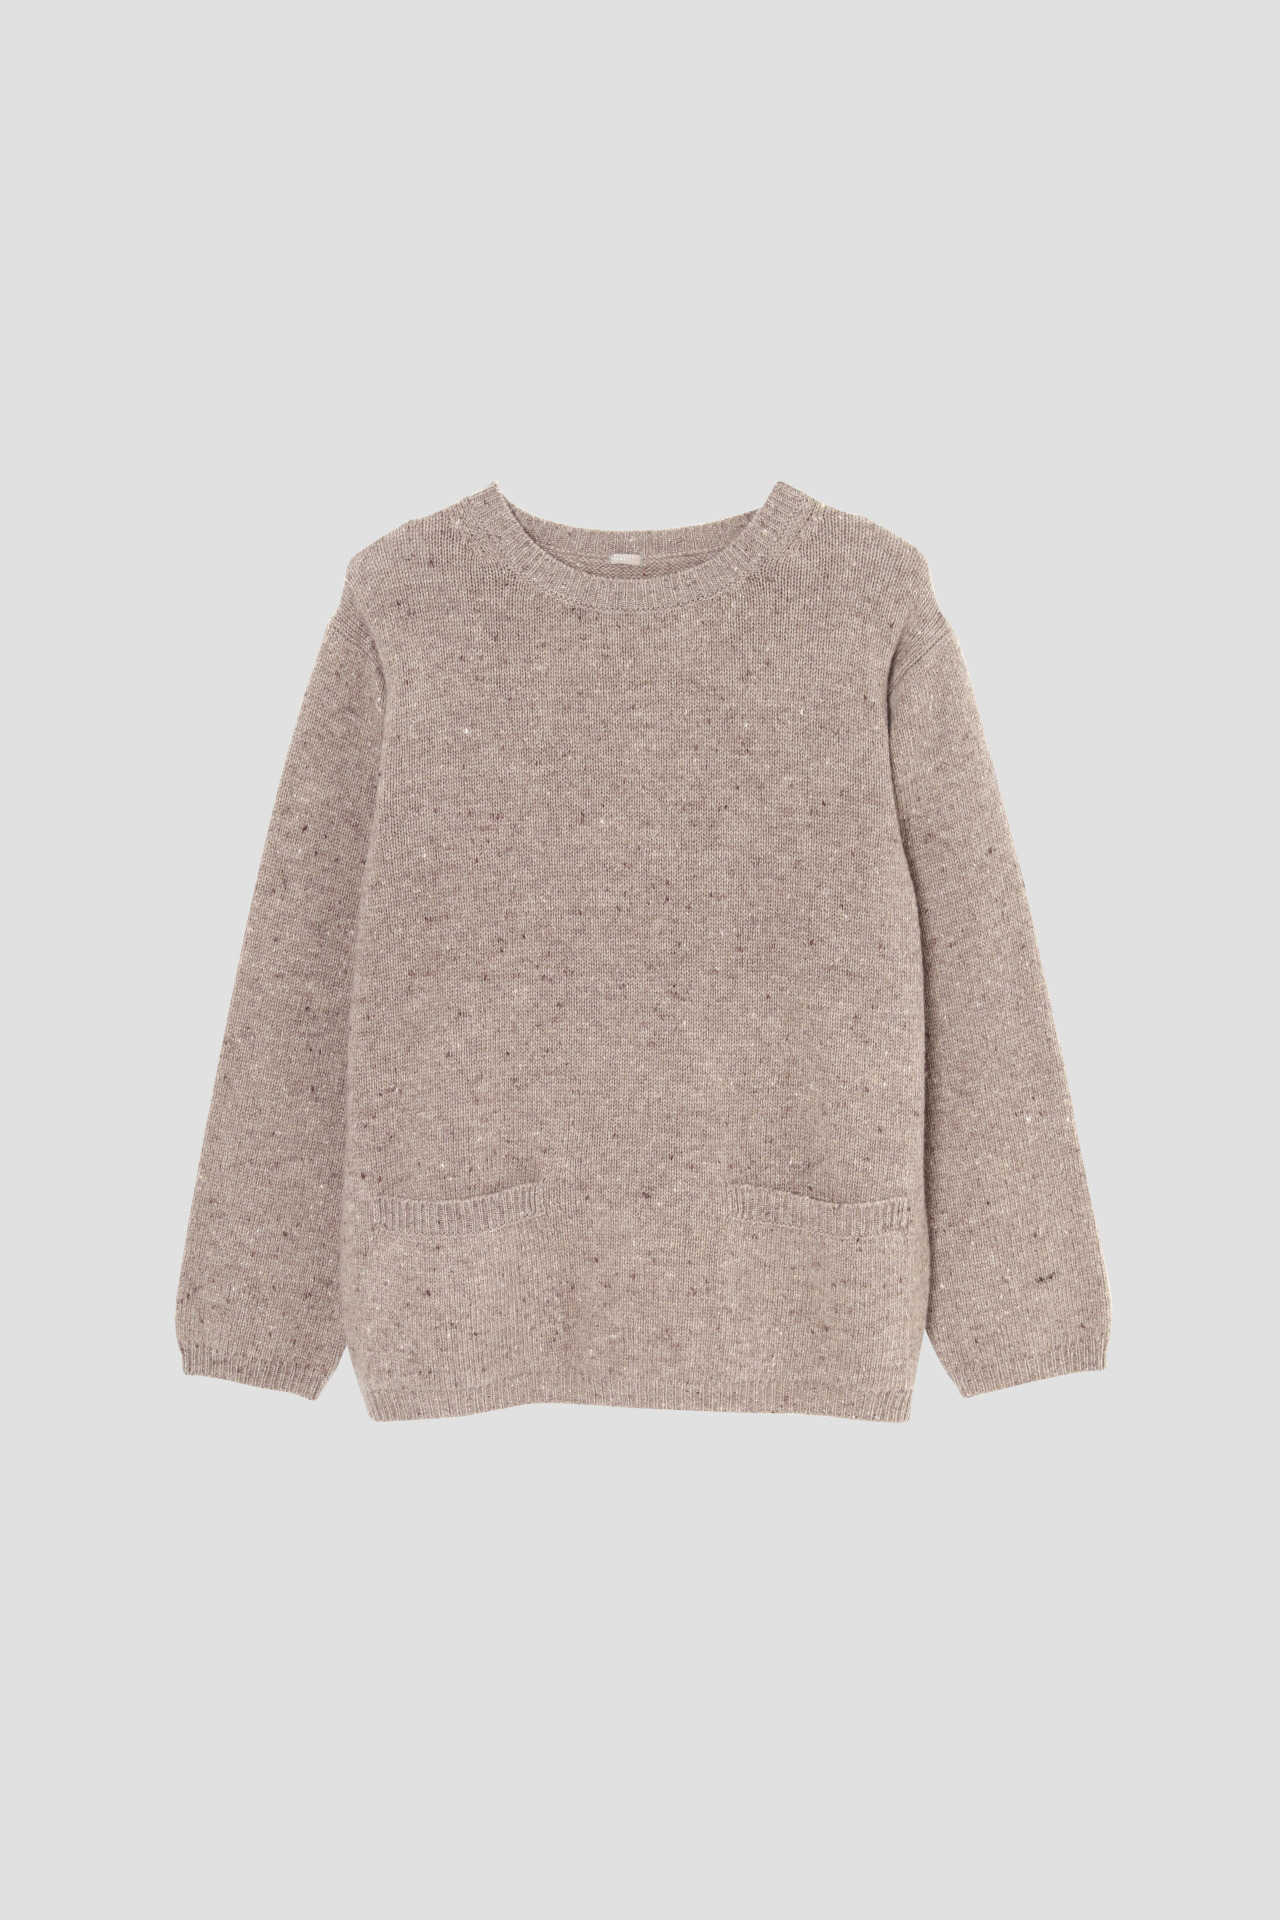 DONEGAL WOOL CASHMERE JUMPER5